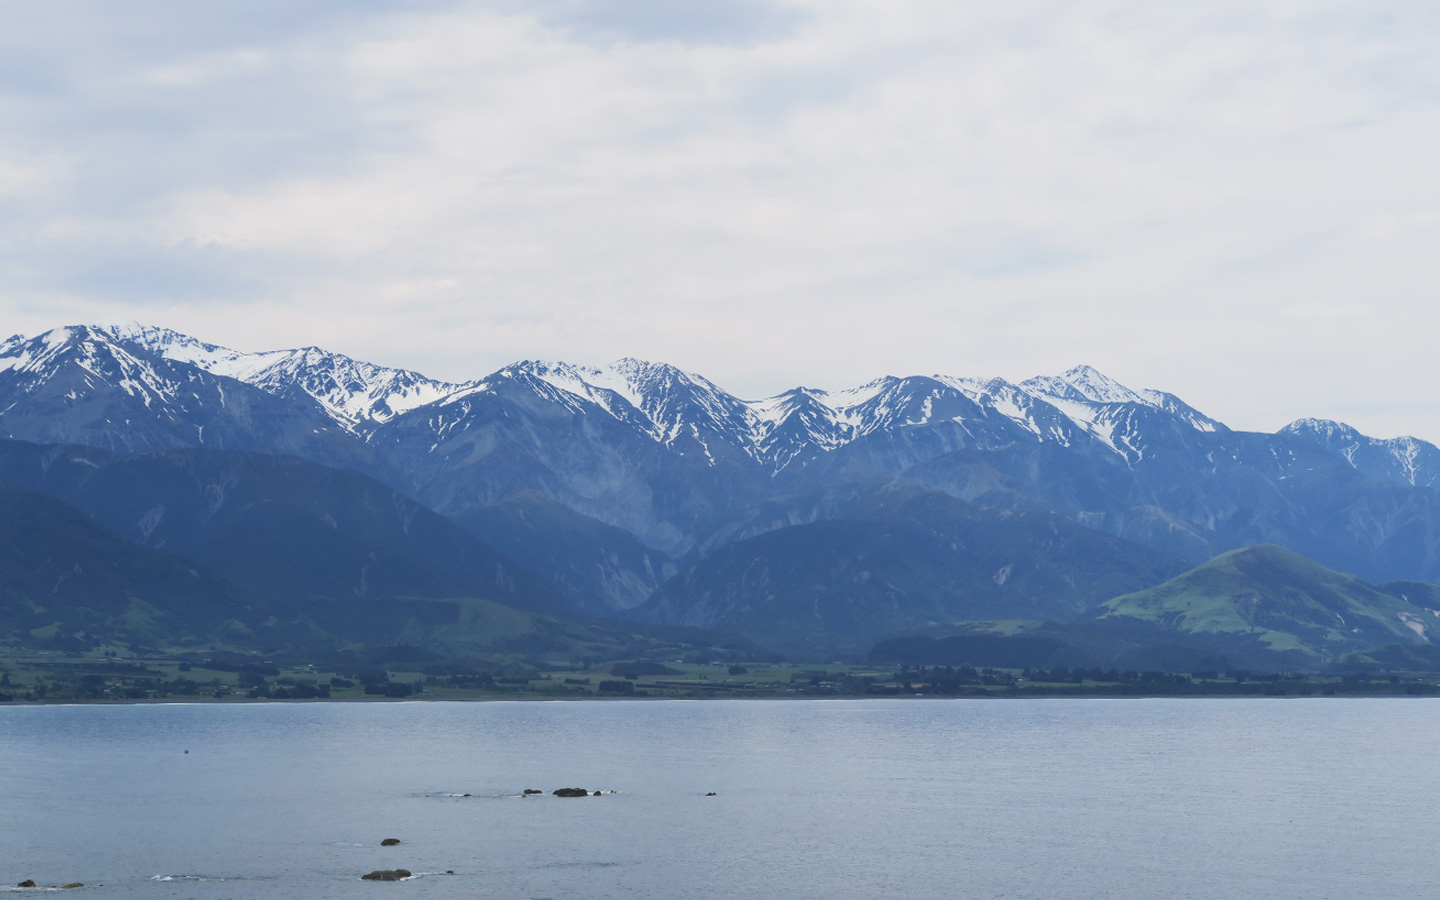 snow top mountains by sea in Kaikoura in New Zealand